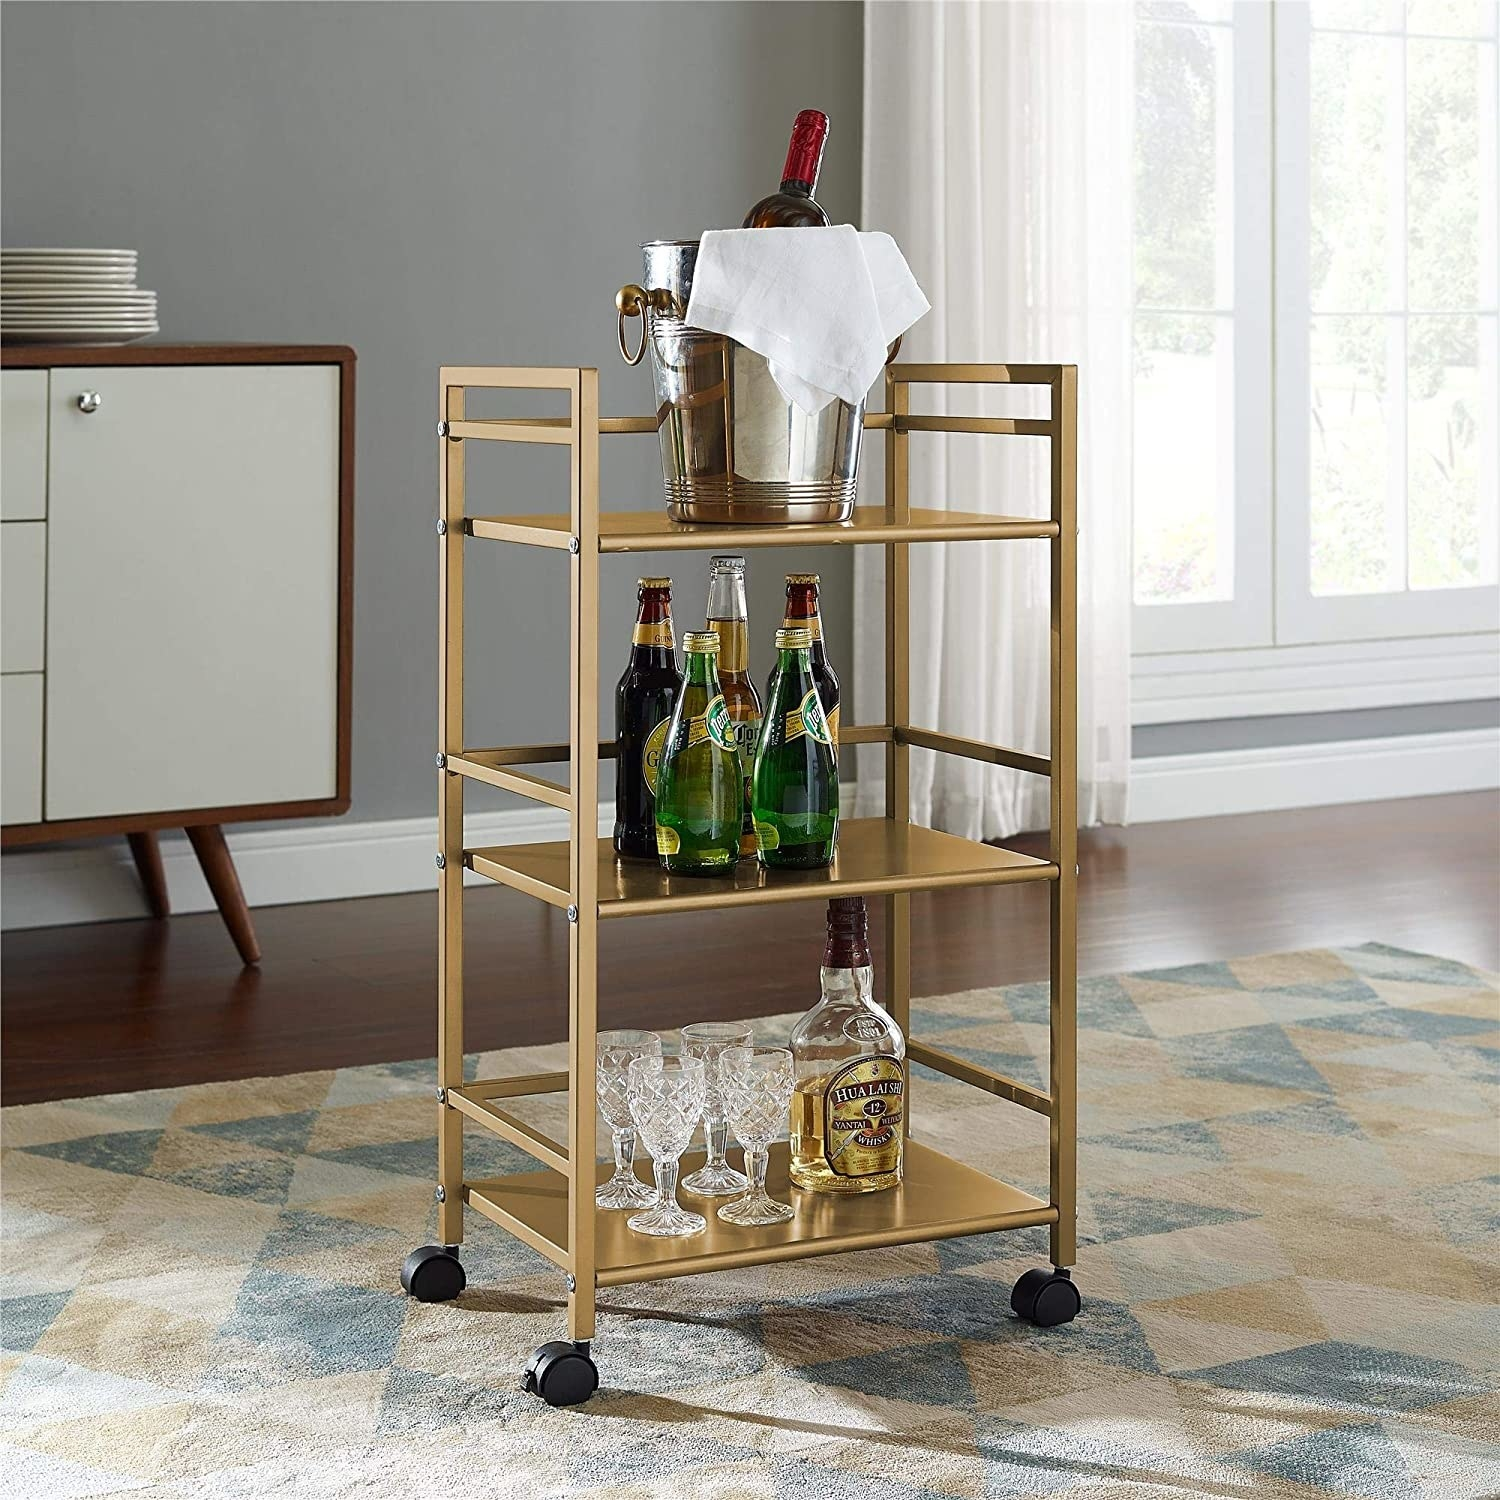 golden utility cart with four black wheels and three open shelves. The cart has wine bottles and glasses on it.